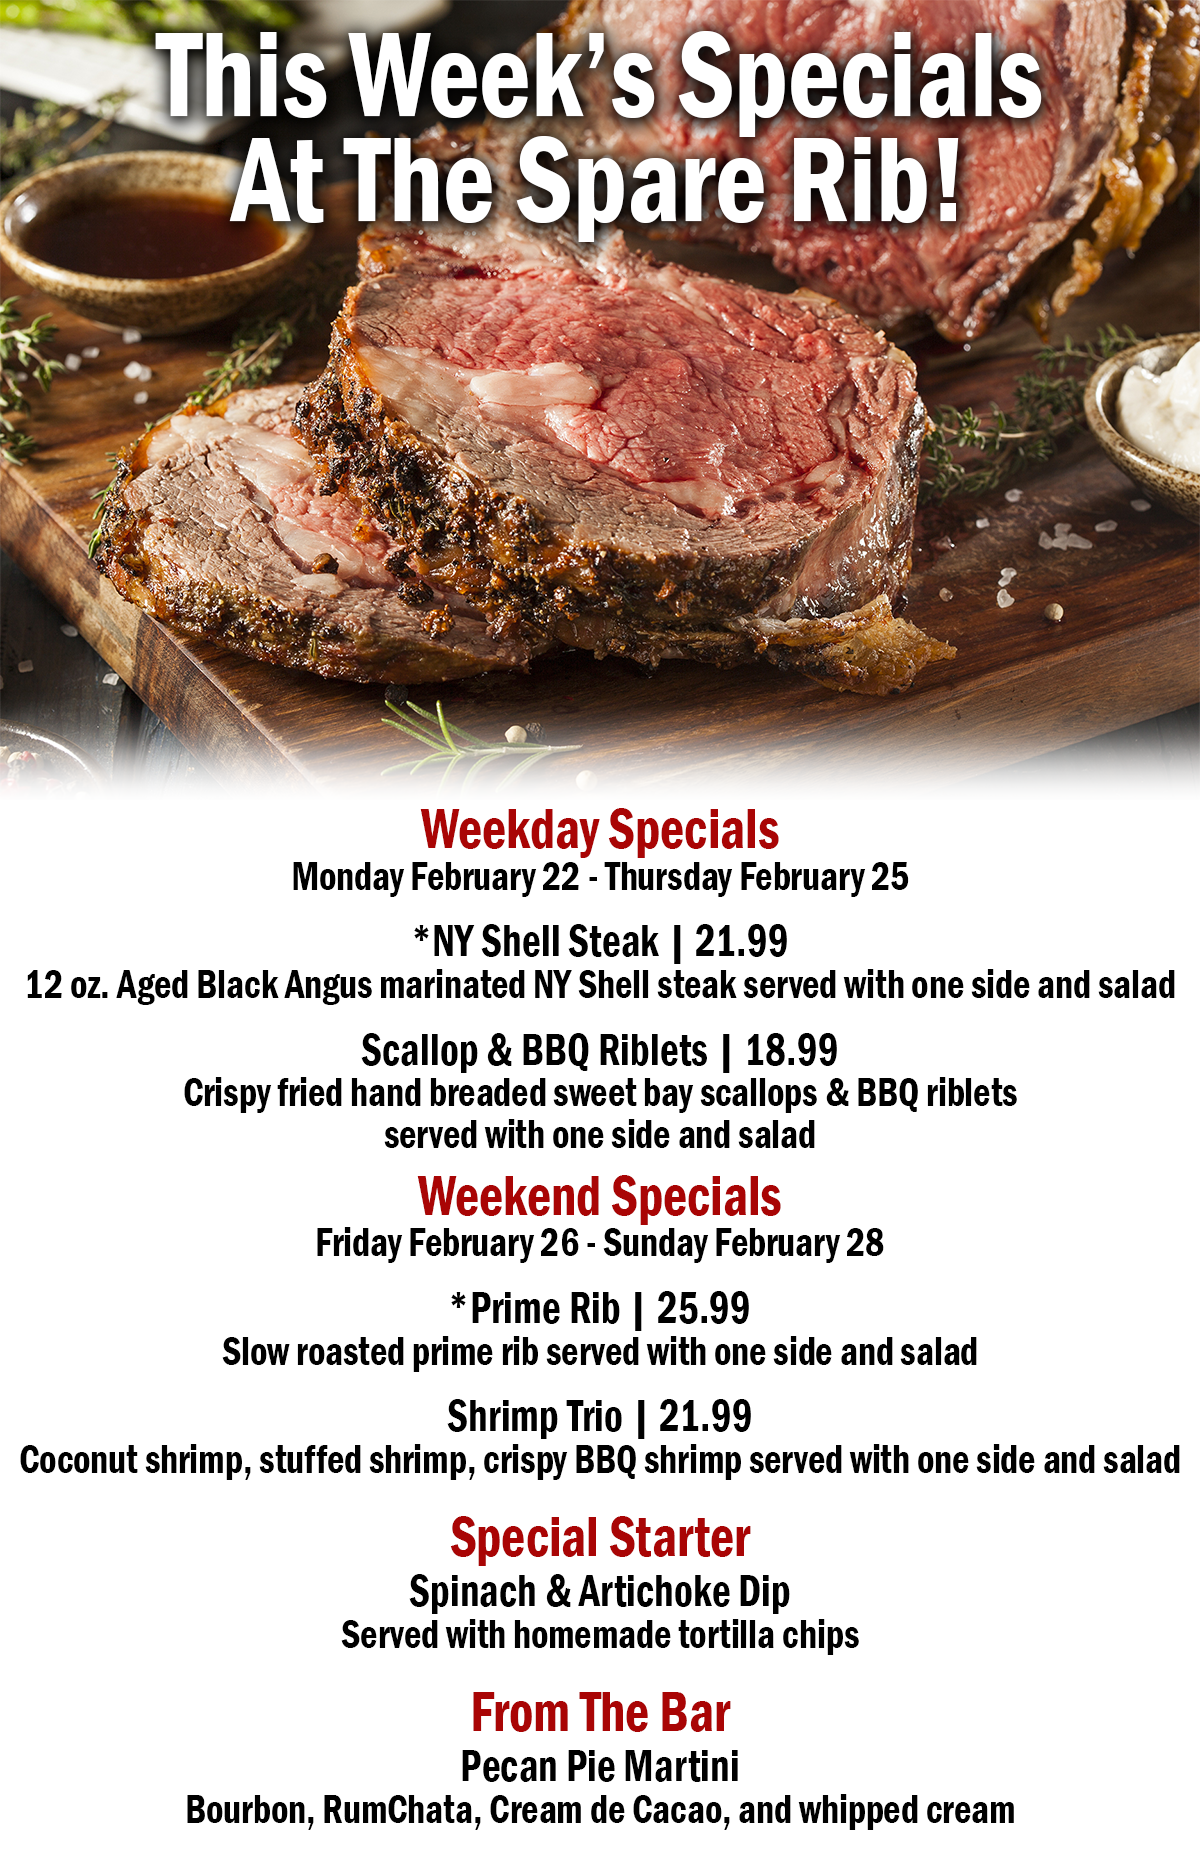 Weekday Specials Monday February 22 - Thursday February 25 *NY Shell Steak 21.99 12 oz. Aged Black Angus marinated NY Shell steak served with one side and salad Scallop & BBQ Riblets 18.99 Crispy fried hand breaded sweet bay scallops & BBQ riblets served with one side and salad Weekend Specials Friday February 26 - Sunday February 28 *Garlic Crusted T-Bone 25.99 Flamed Grilled T-Bone Crusted with fresh sliced roasted garlic and herbs over mashed potatoes and one side and a salad Shrimp Trio 21.99 Coconut shrimp, stuffed shrimp, crispy BBQ shrimp served with one side and salad Special Starter Spinach & Artichoke Dip Served with homemade tortilla chips  From The Bar Pecan Pie Martini Bourbon, RumChata, Cream de Cacao, and whipped cream